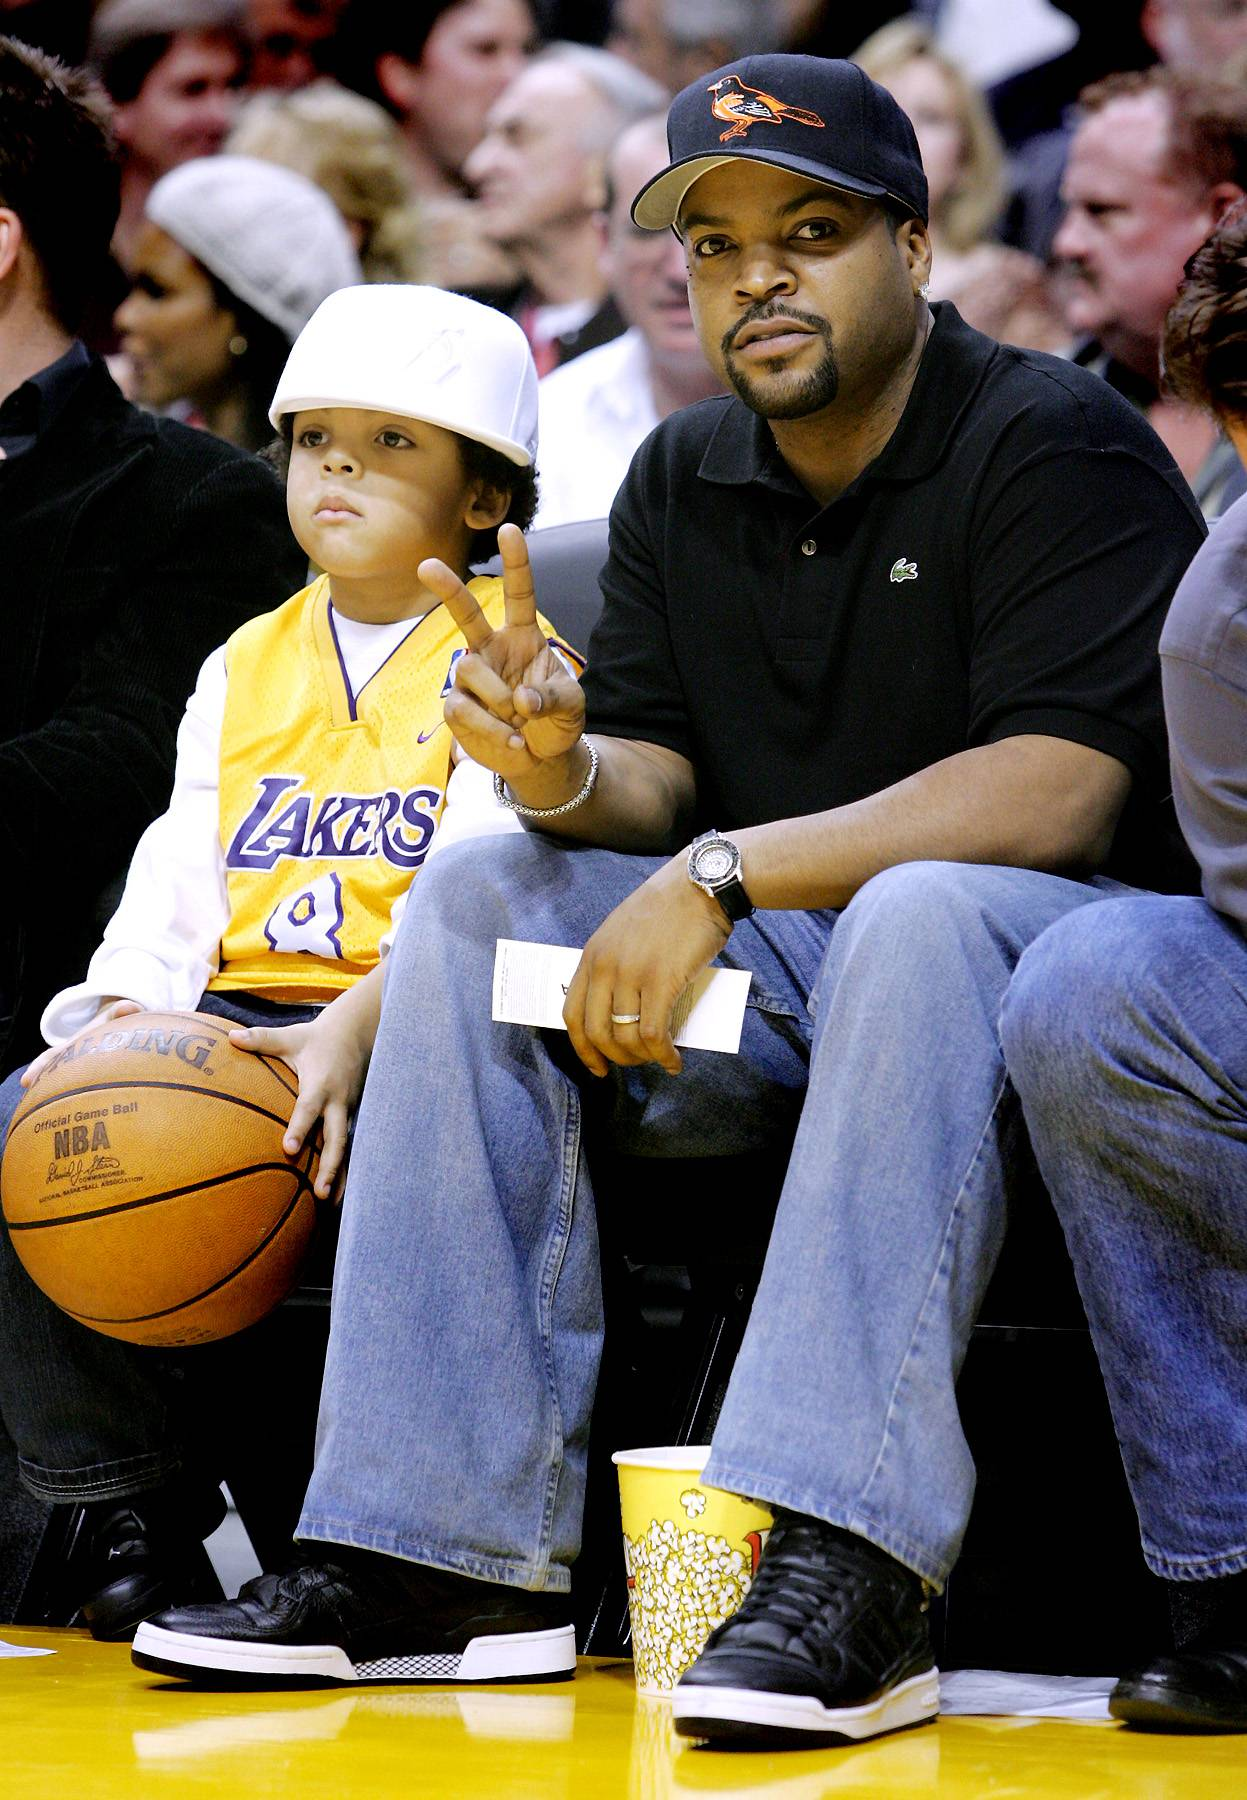 """Ice Cube - Ice Cube is real vocal about his love for the L.A. Lakers (and disdain for Dwight Howard). He says he's been a fan since he was """"in the womb"""" and goes to """"every game.""""(Photo: Vince Bucci/Getty Images)"""